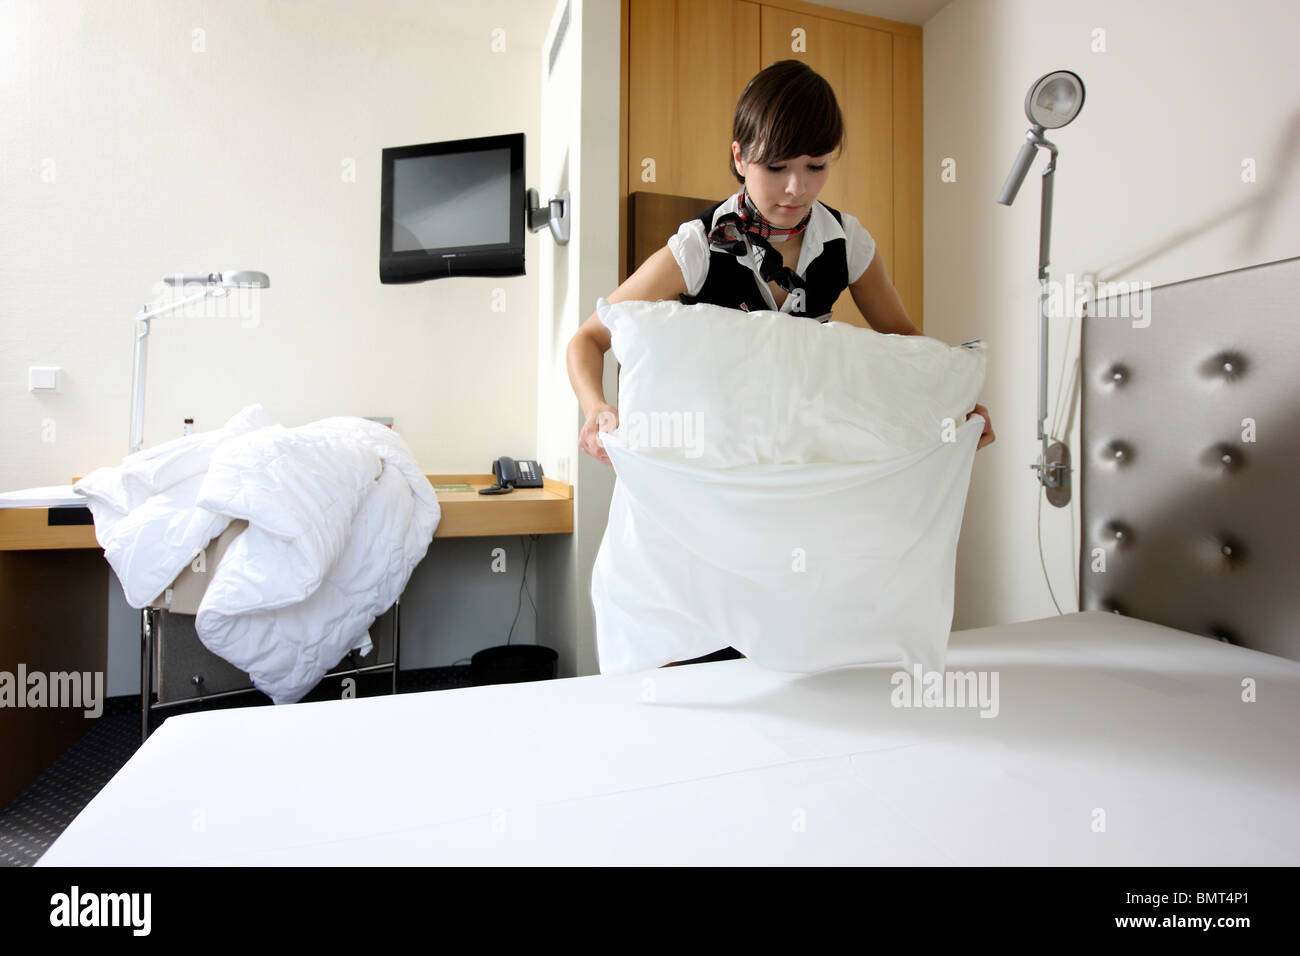 Hotel, room service, house keeping at work in a hotel room. Cleaning ...